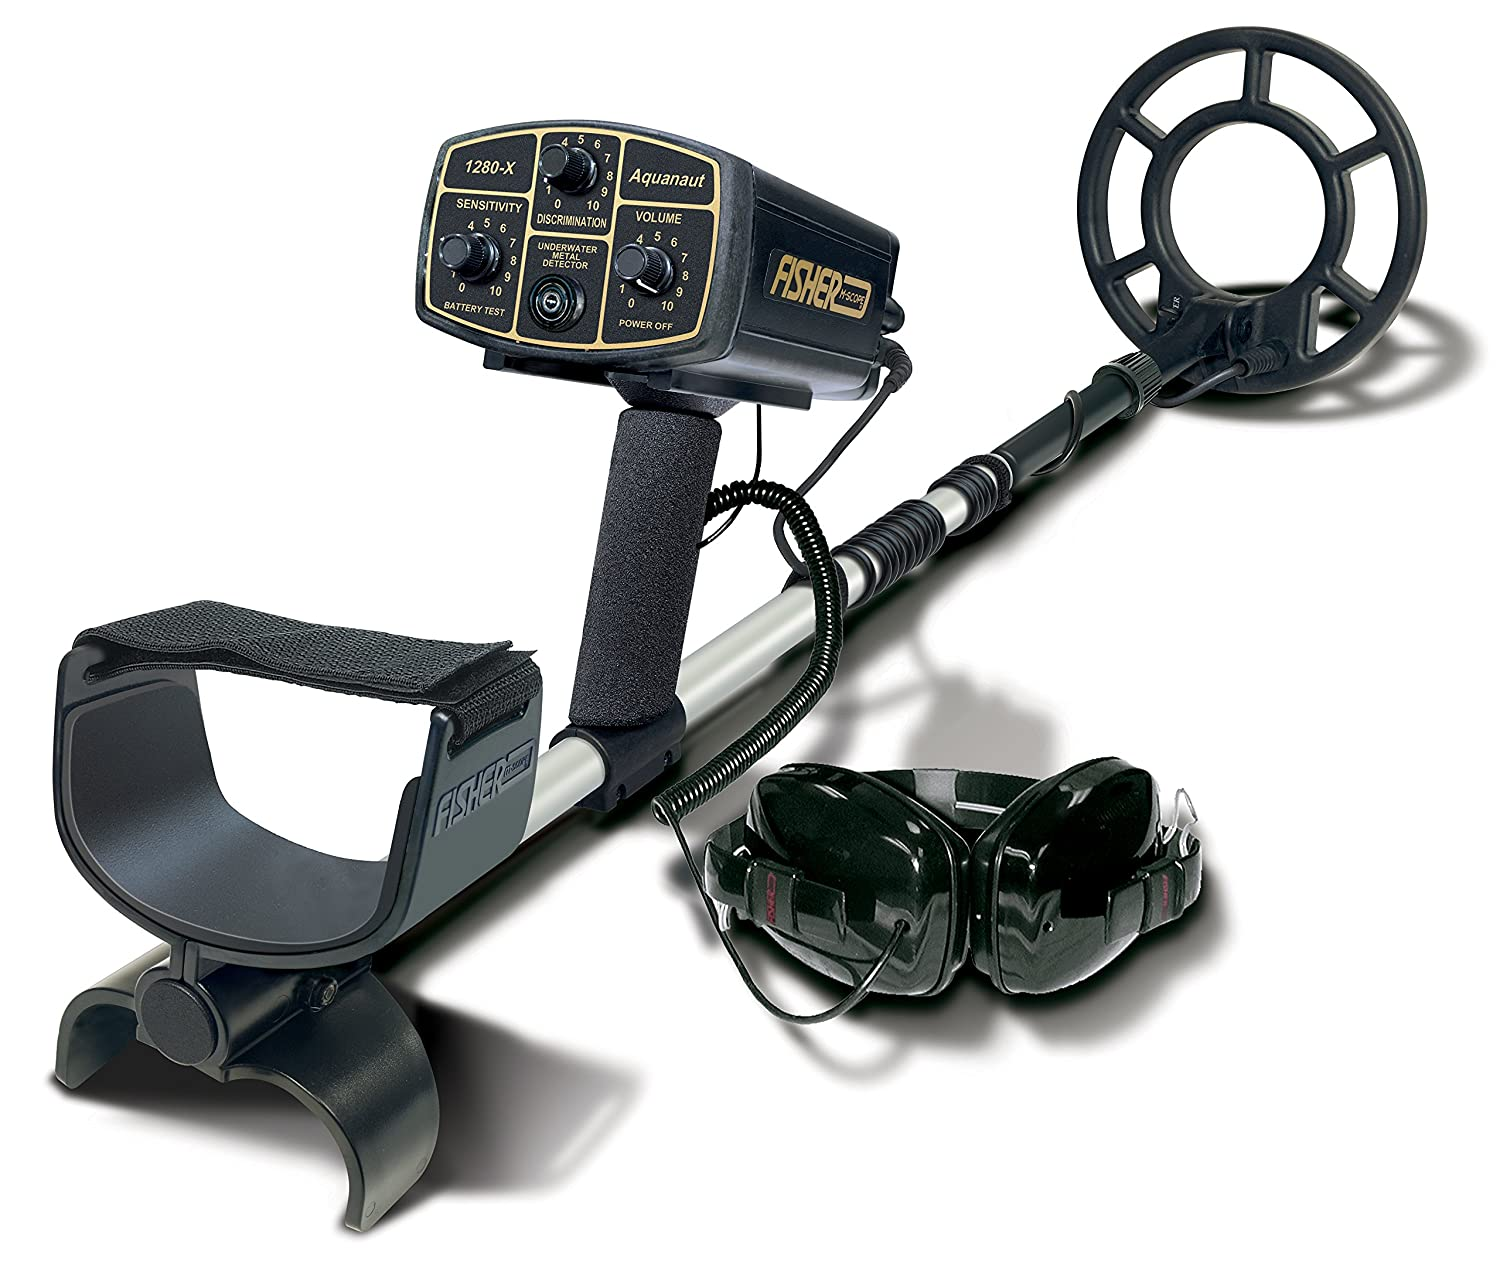 Fisher 1280X-8 Underwater All-Purpose Metal Detector